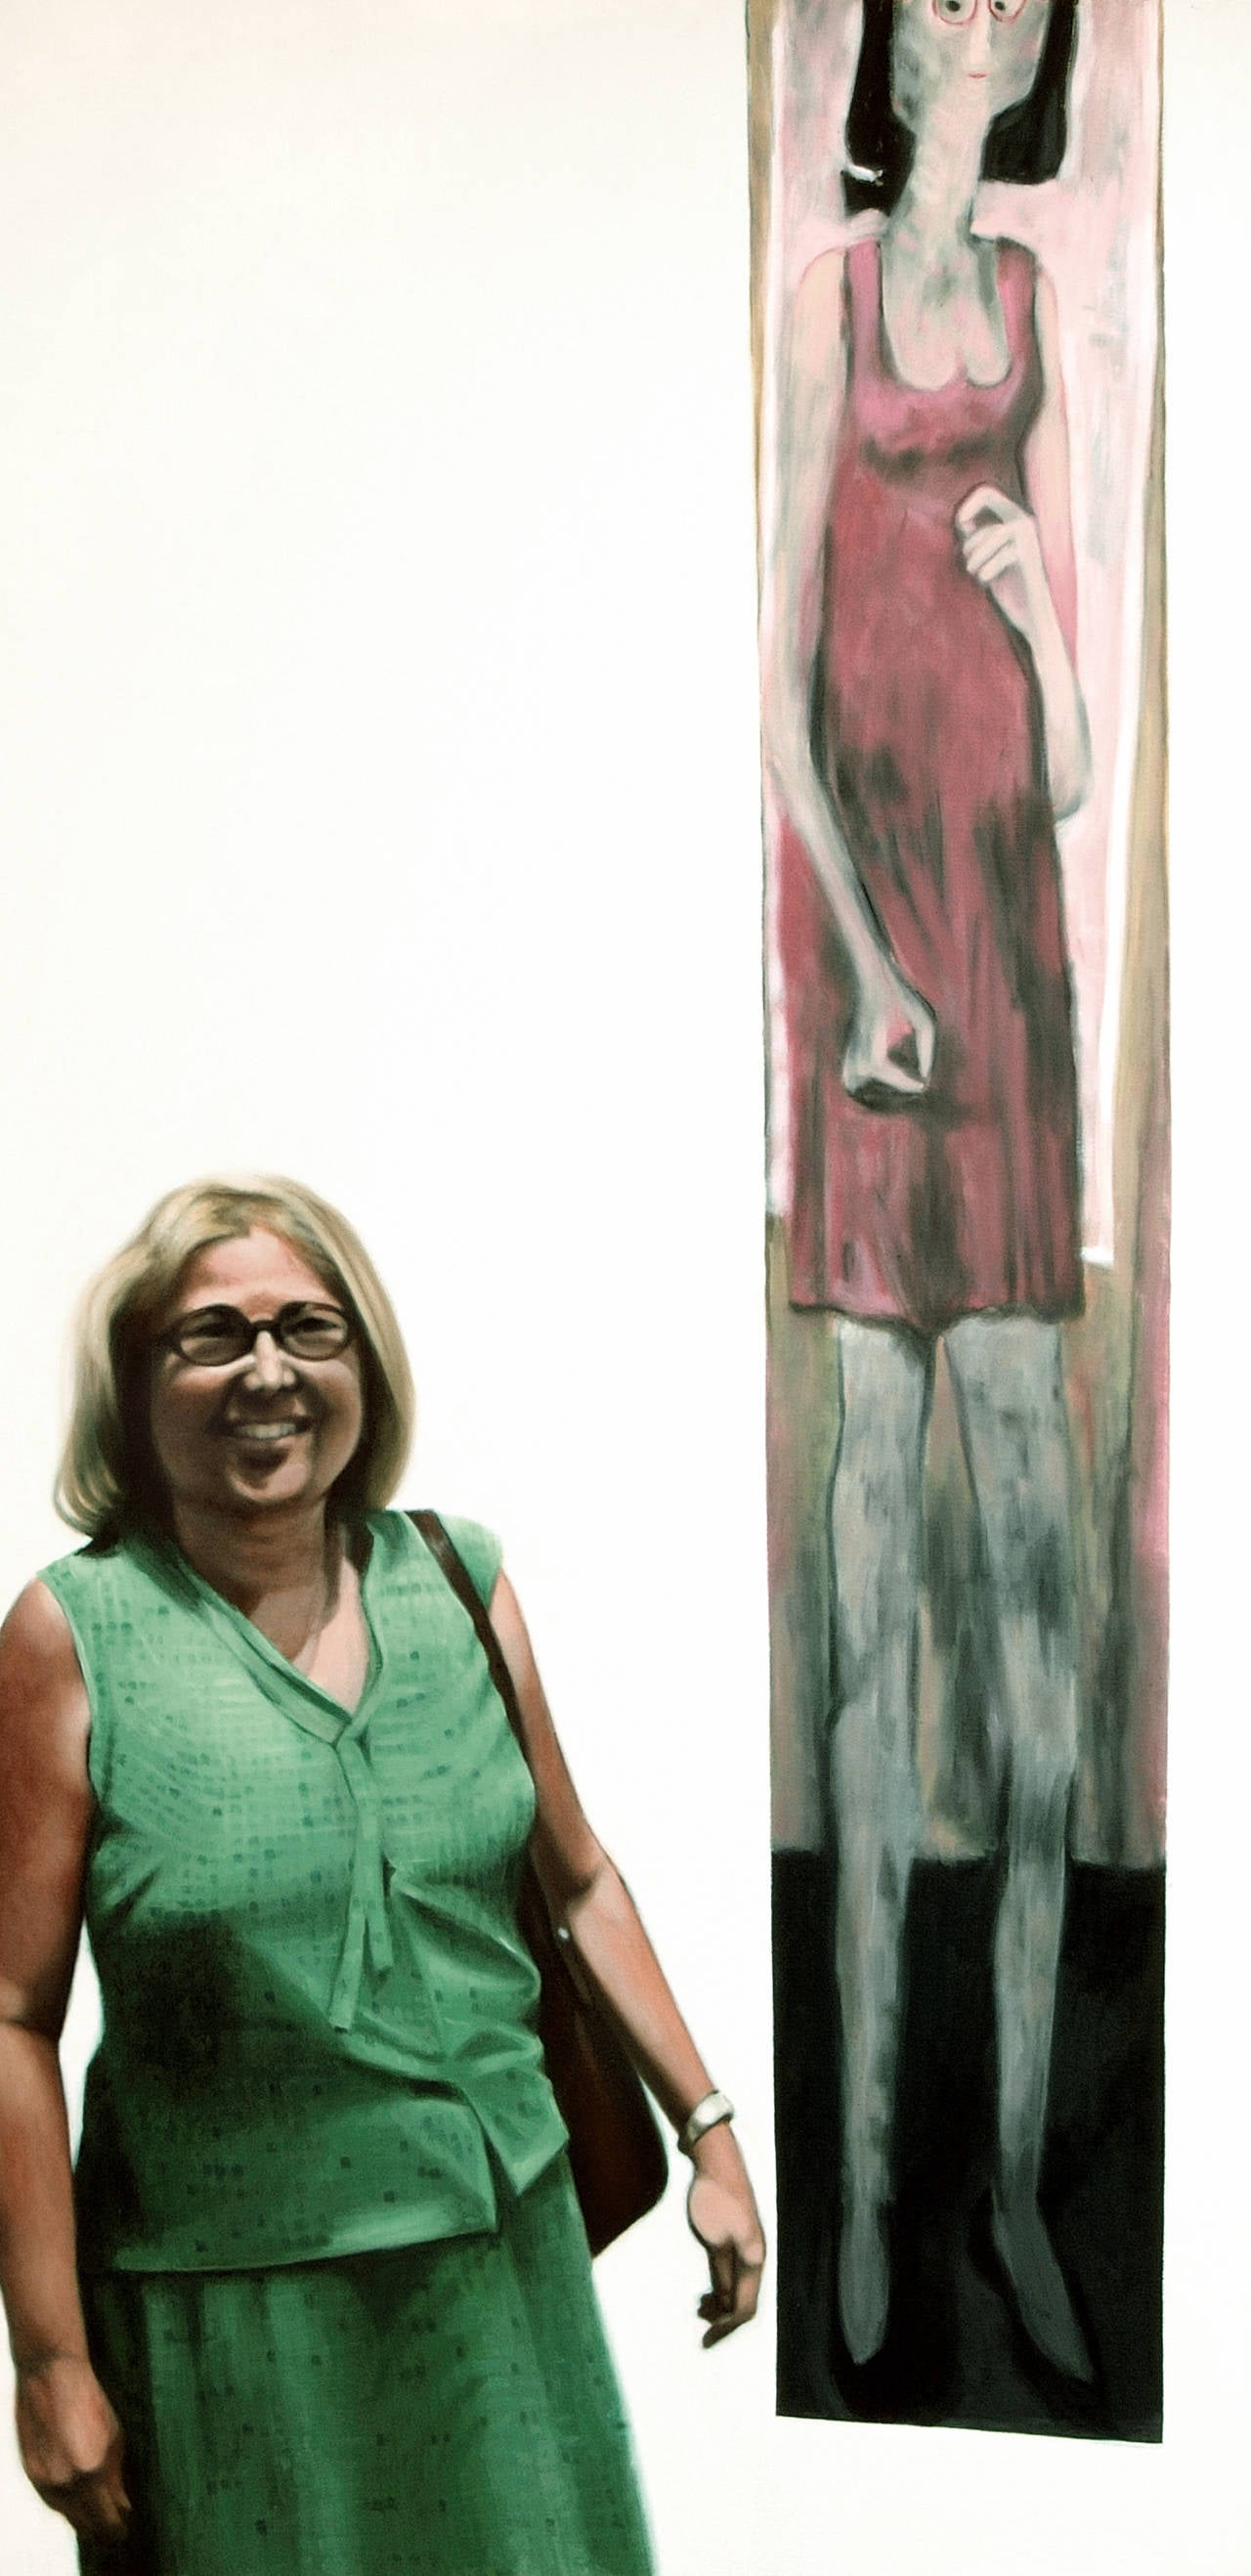 Bruce Adams Figurative Painting - Picture of Haydee with Painting - Museo de Arte Contemporaneo, Puerto Rico